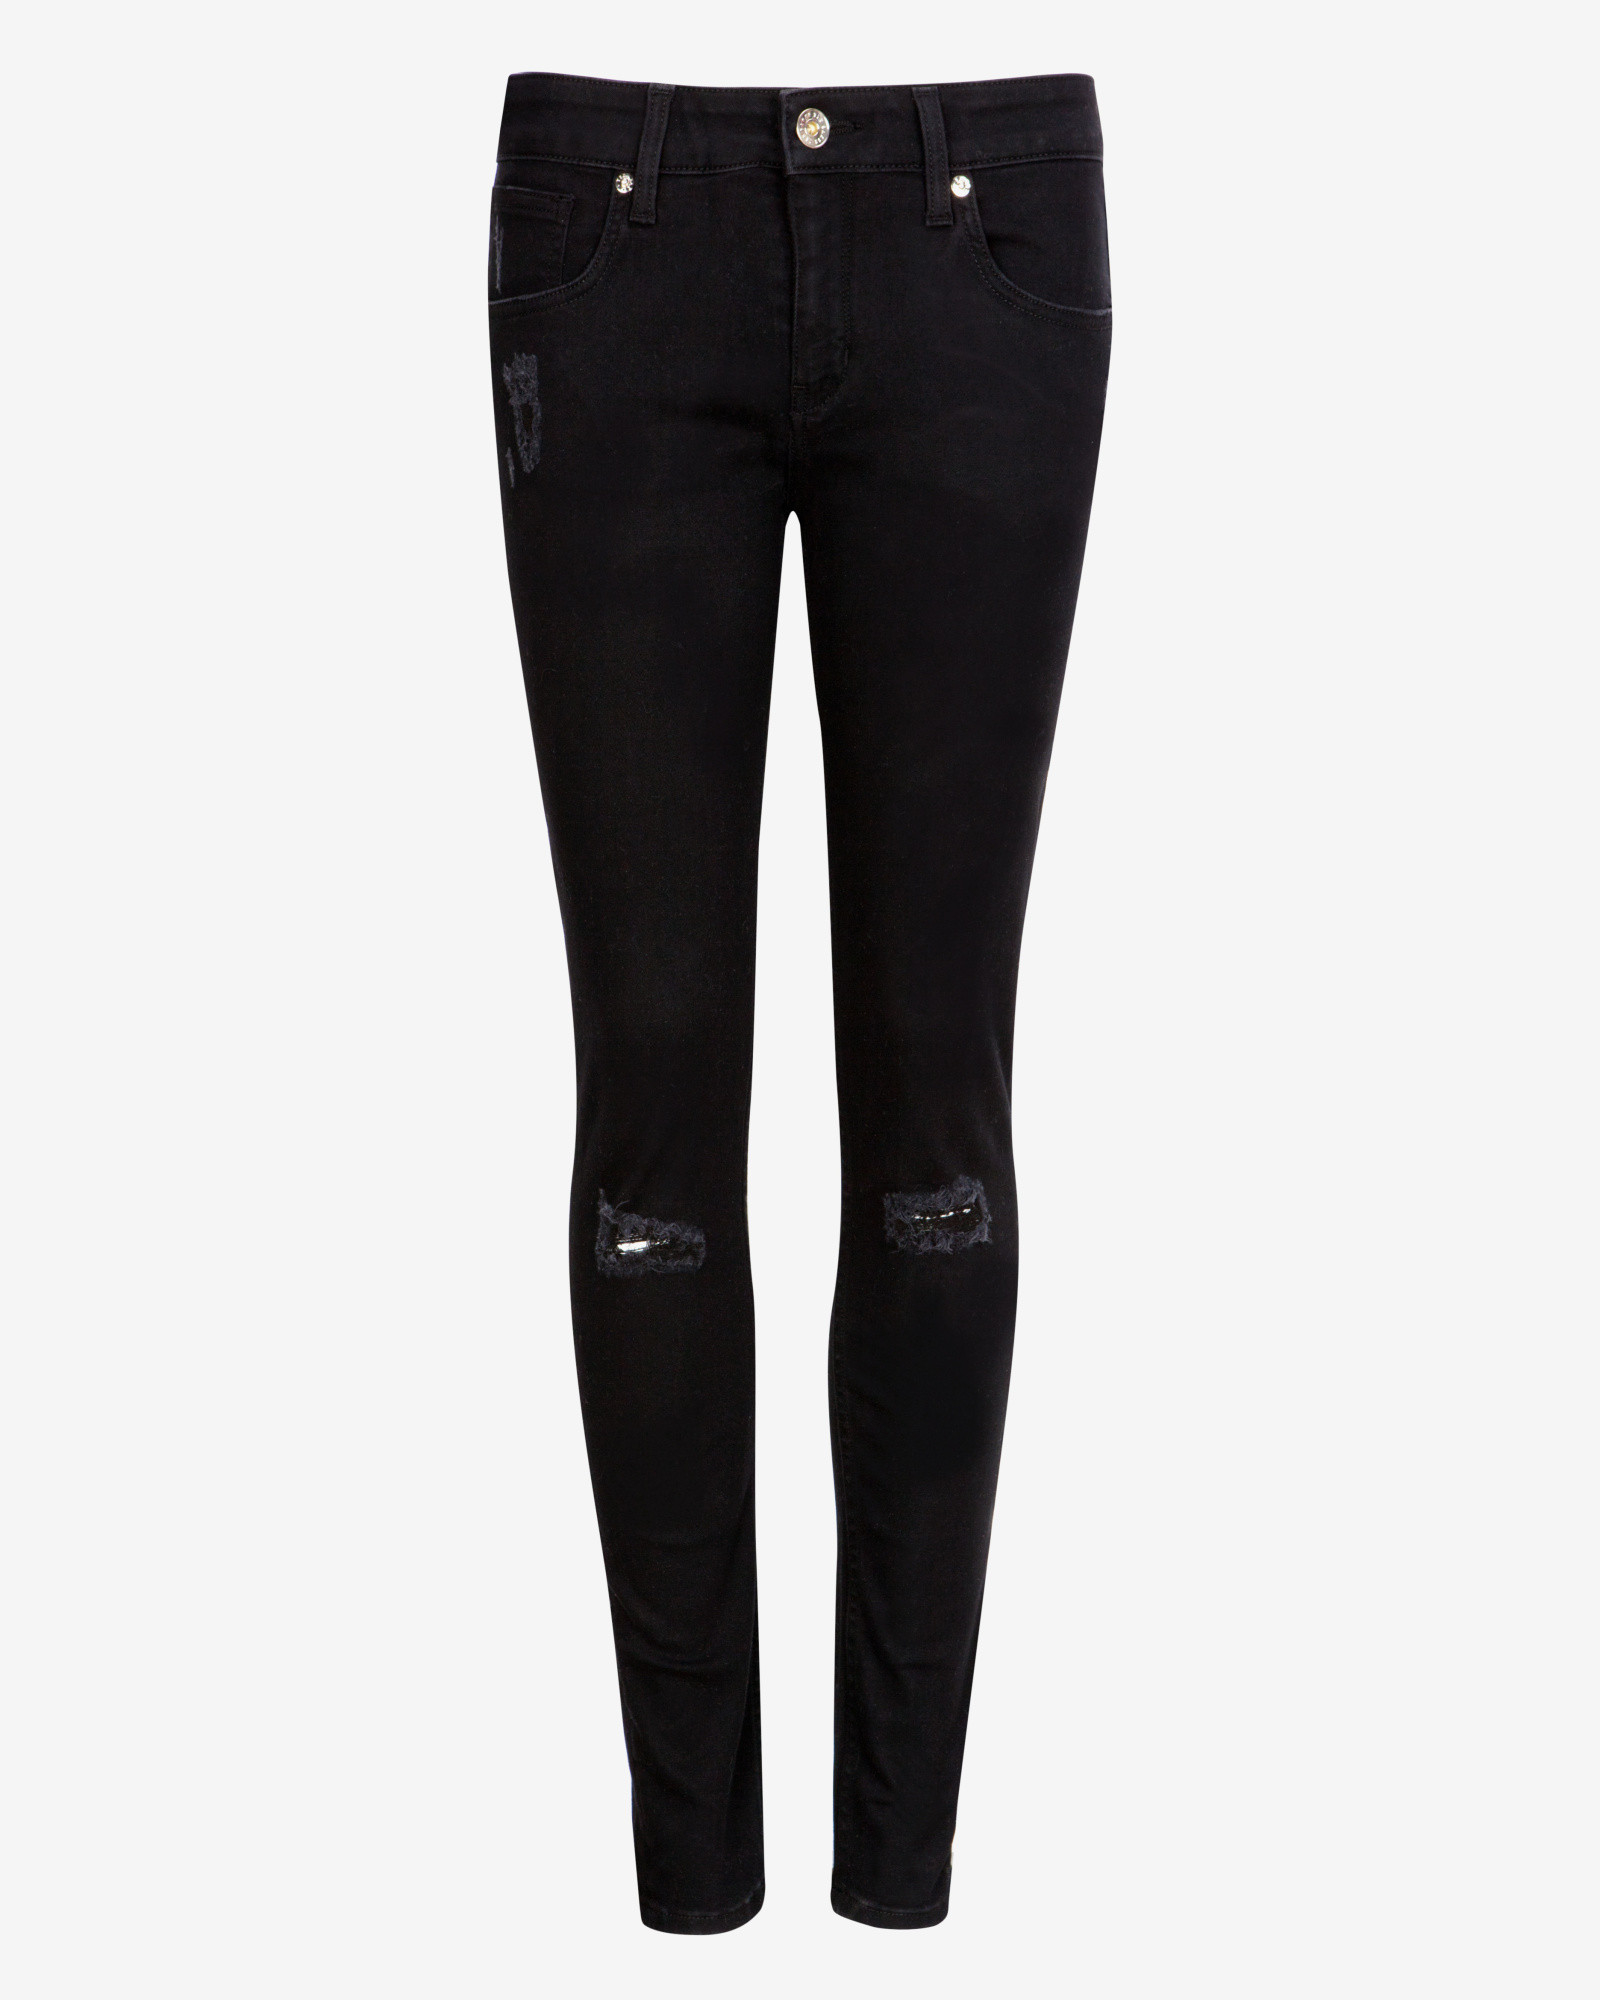 fe9a031b1 Ted Baker Black Distressed Skinny Jeans in Black - Lyst